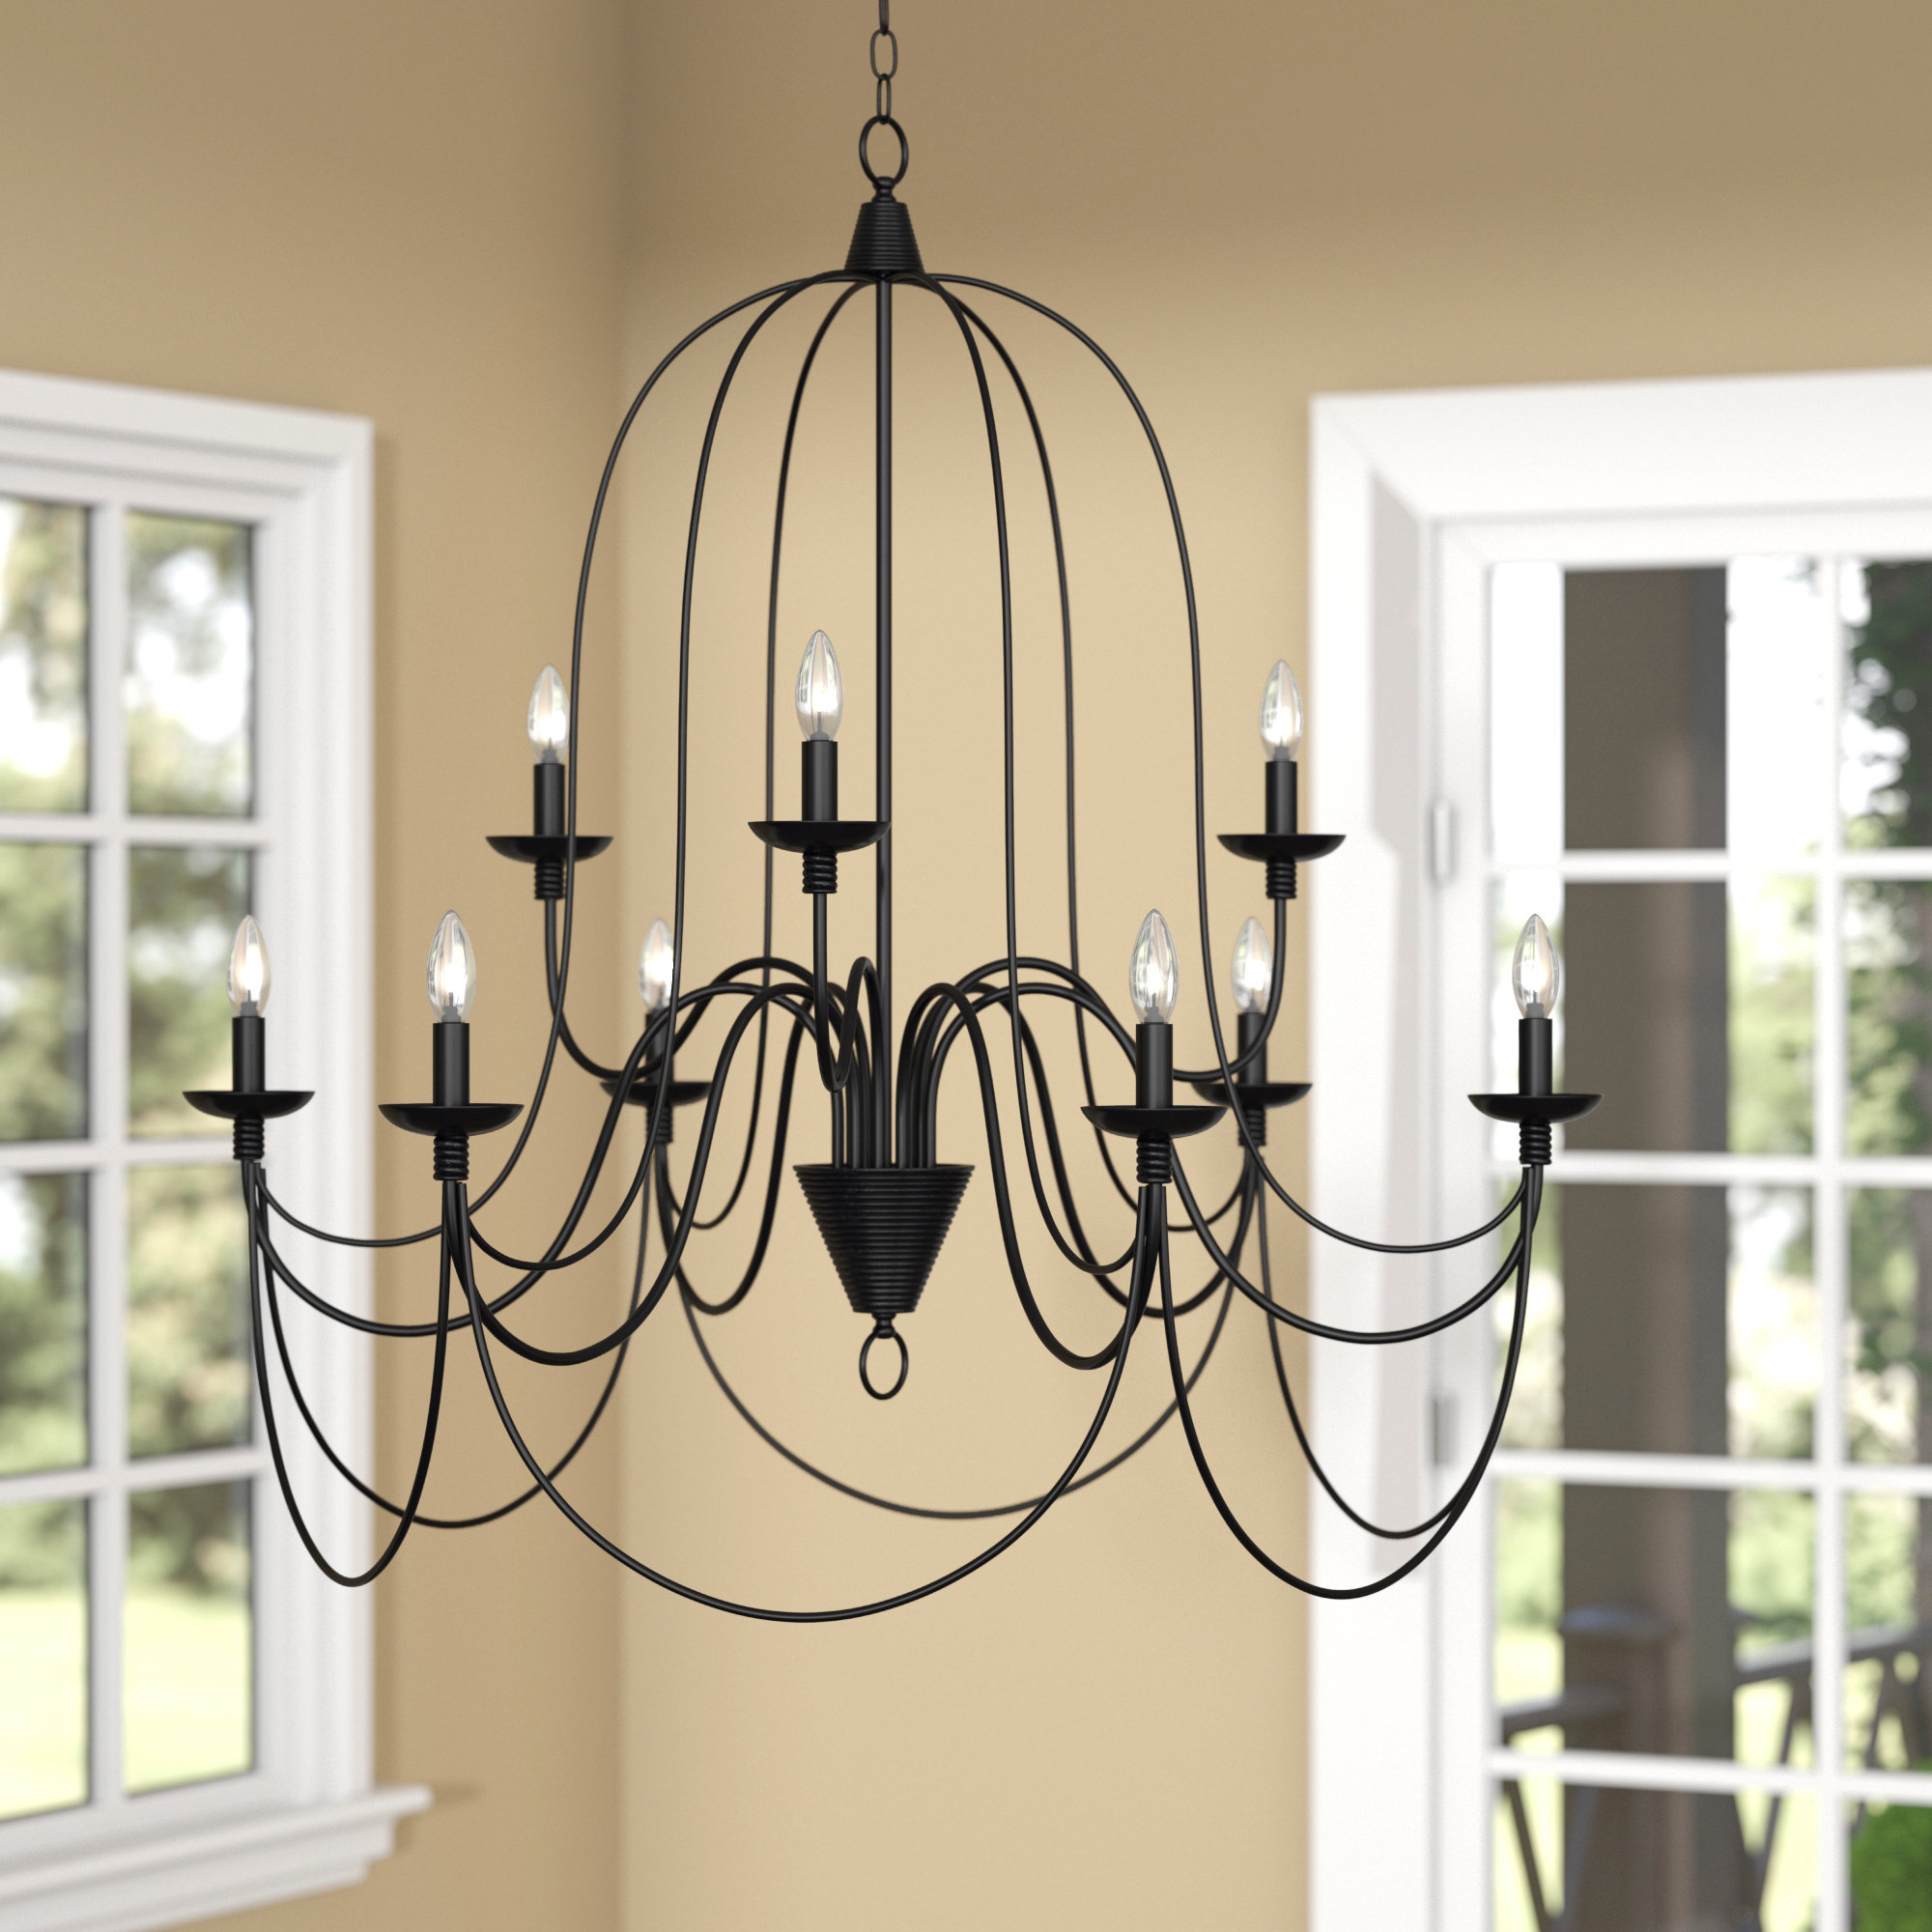 Widely Used Watford 6 Light Candle Style Chandeliers Pertaining To Watford 9 Light Candle Style Chandelier (View 20 of 20)